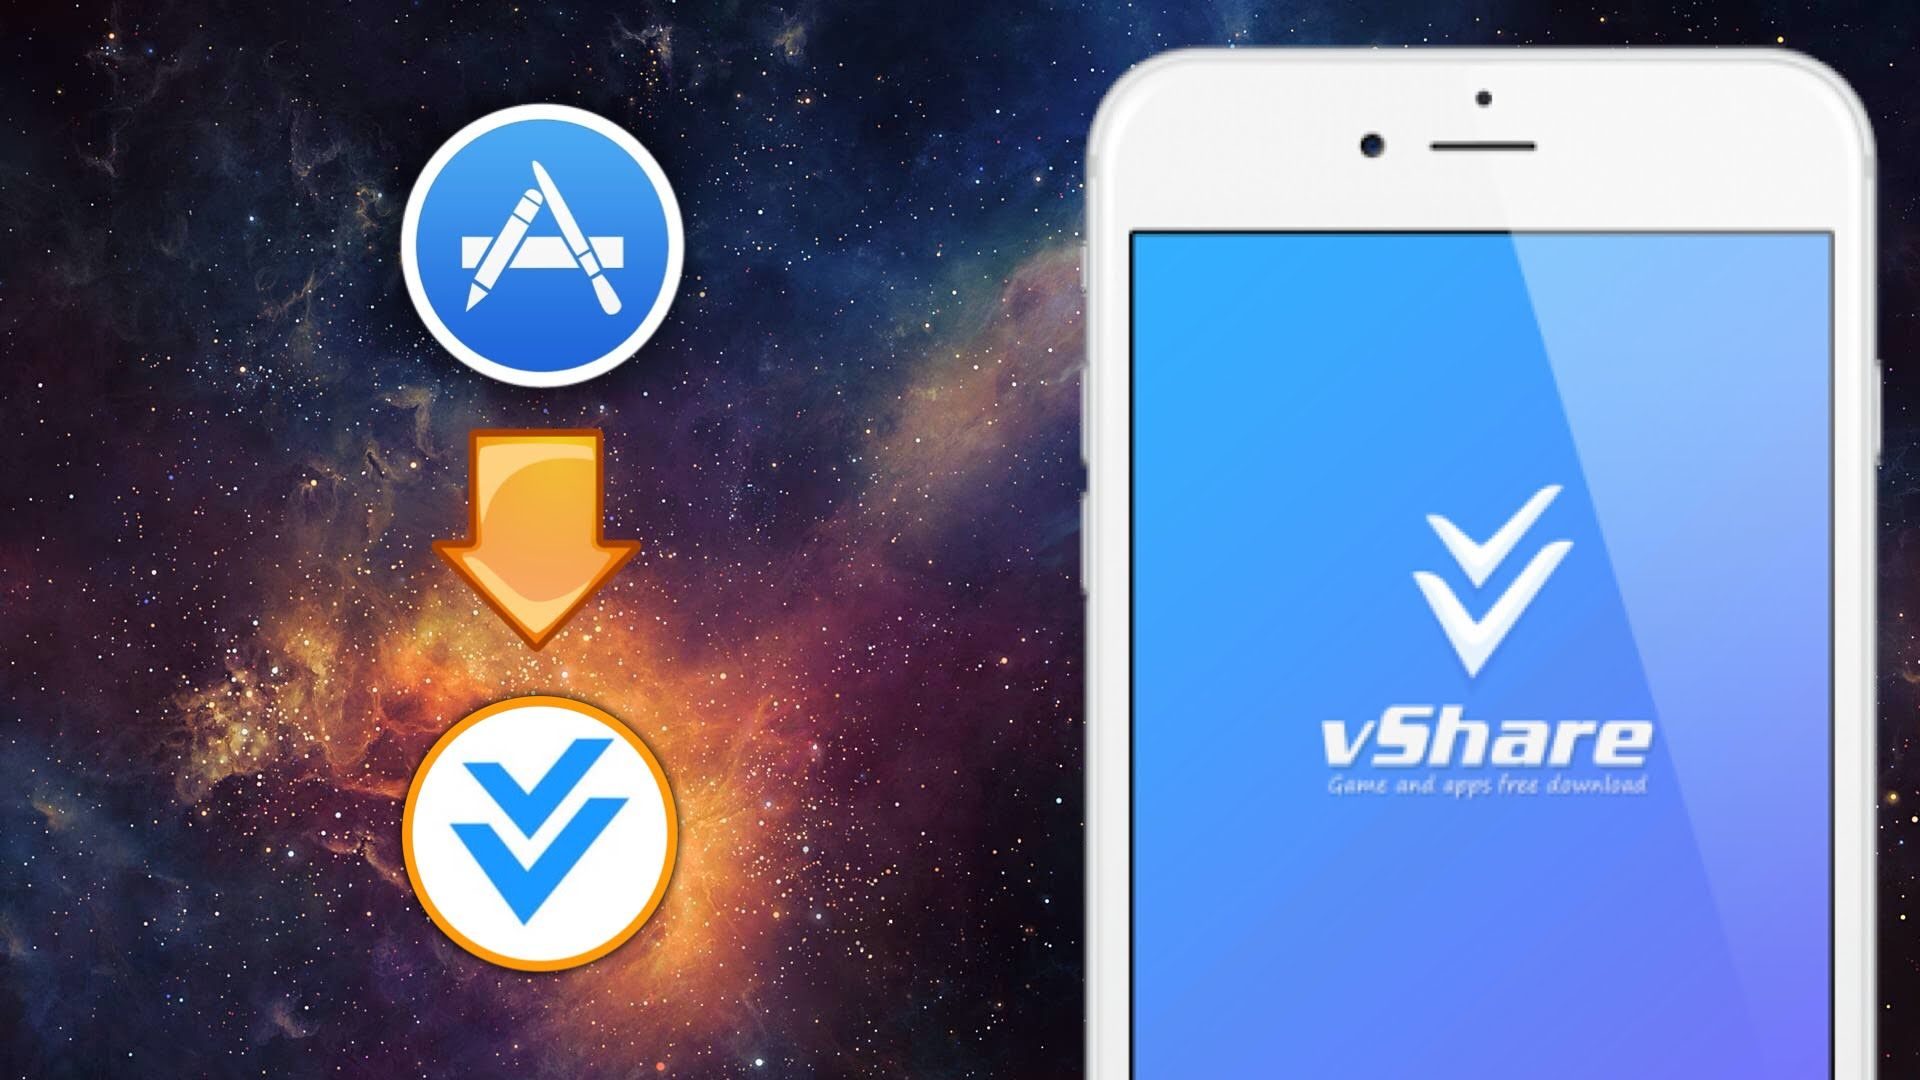 [NEW] vShare SE In App Store; Install Paid Apps & Hacked